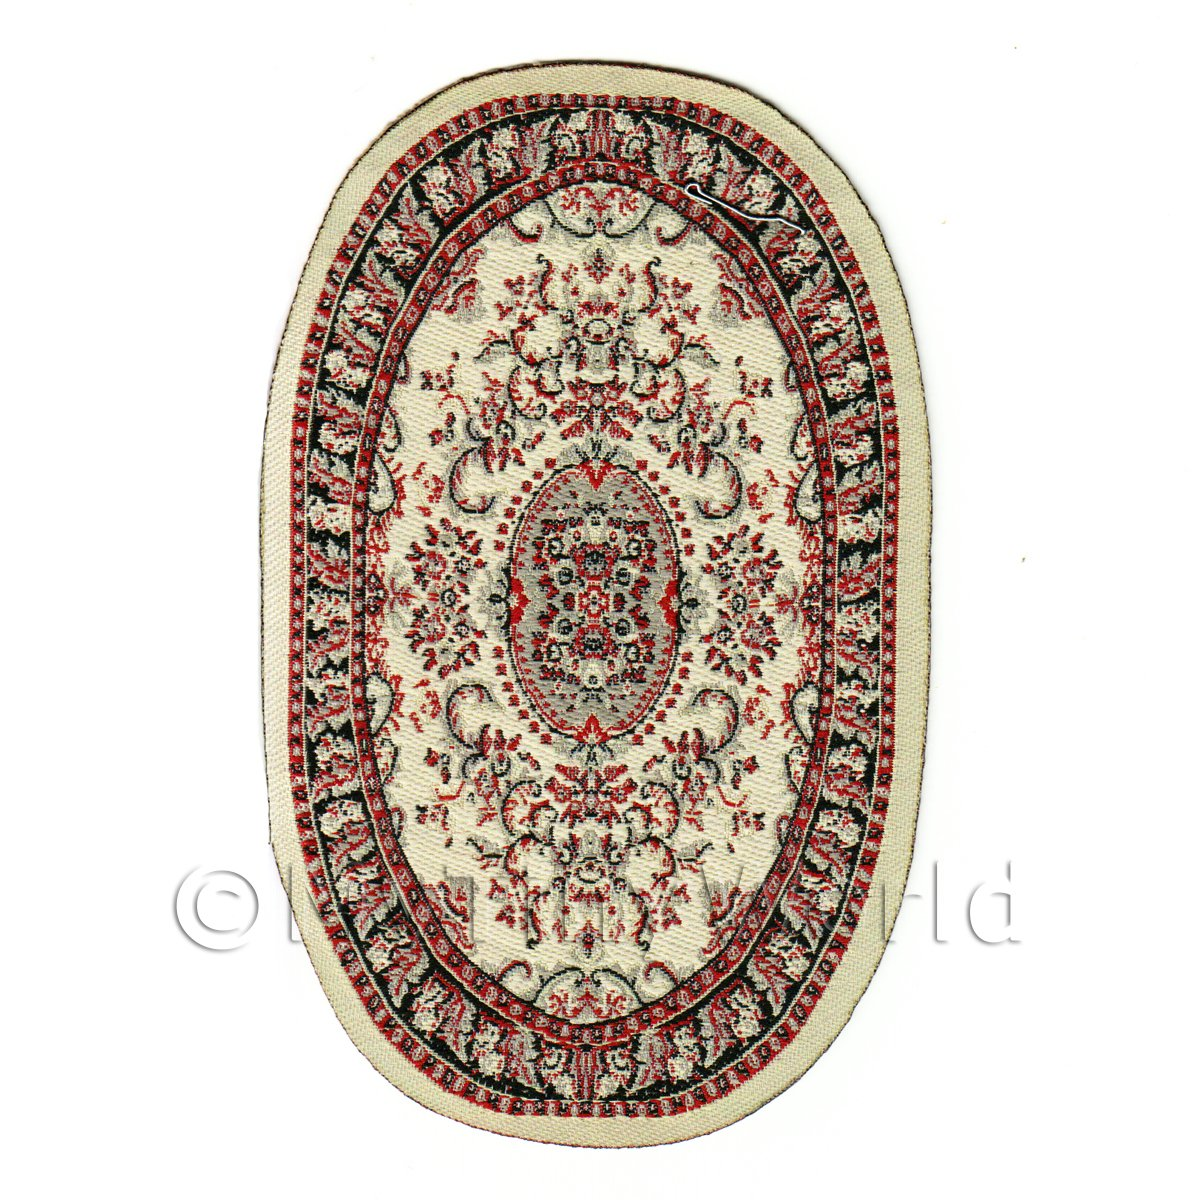 Dolls House Miniature Small Oval Victorian Rug (VCNSO01)